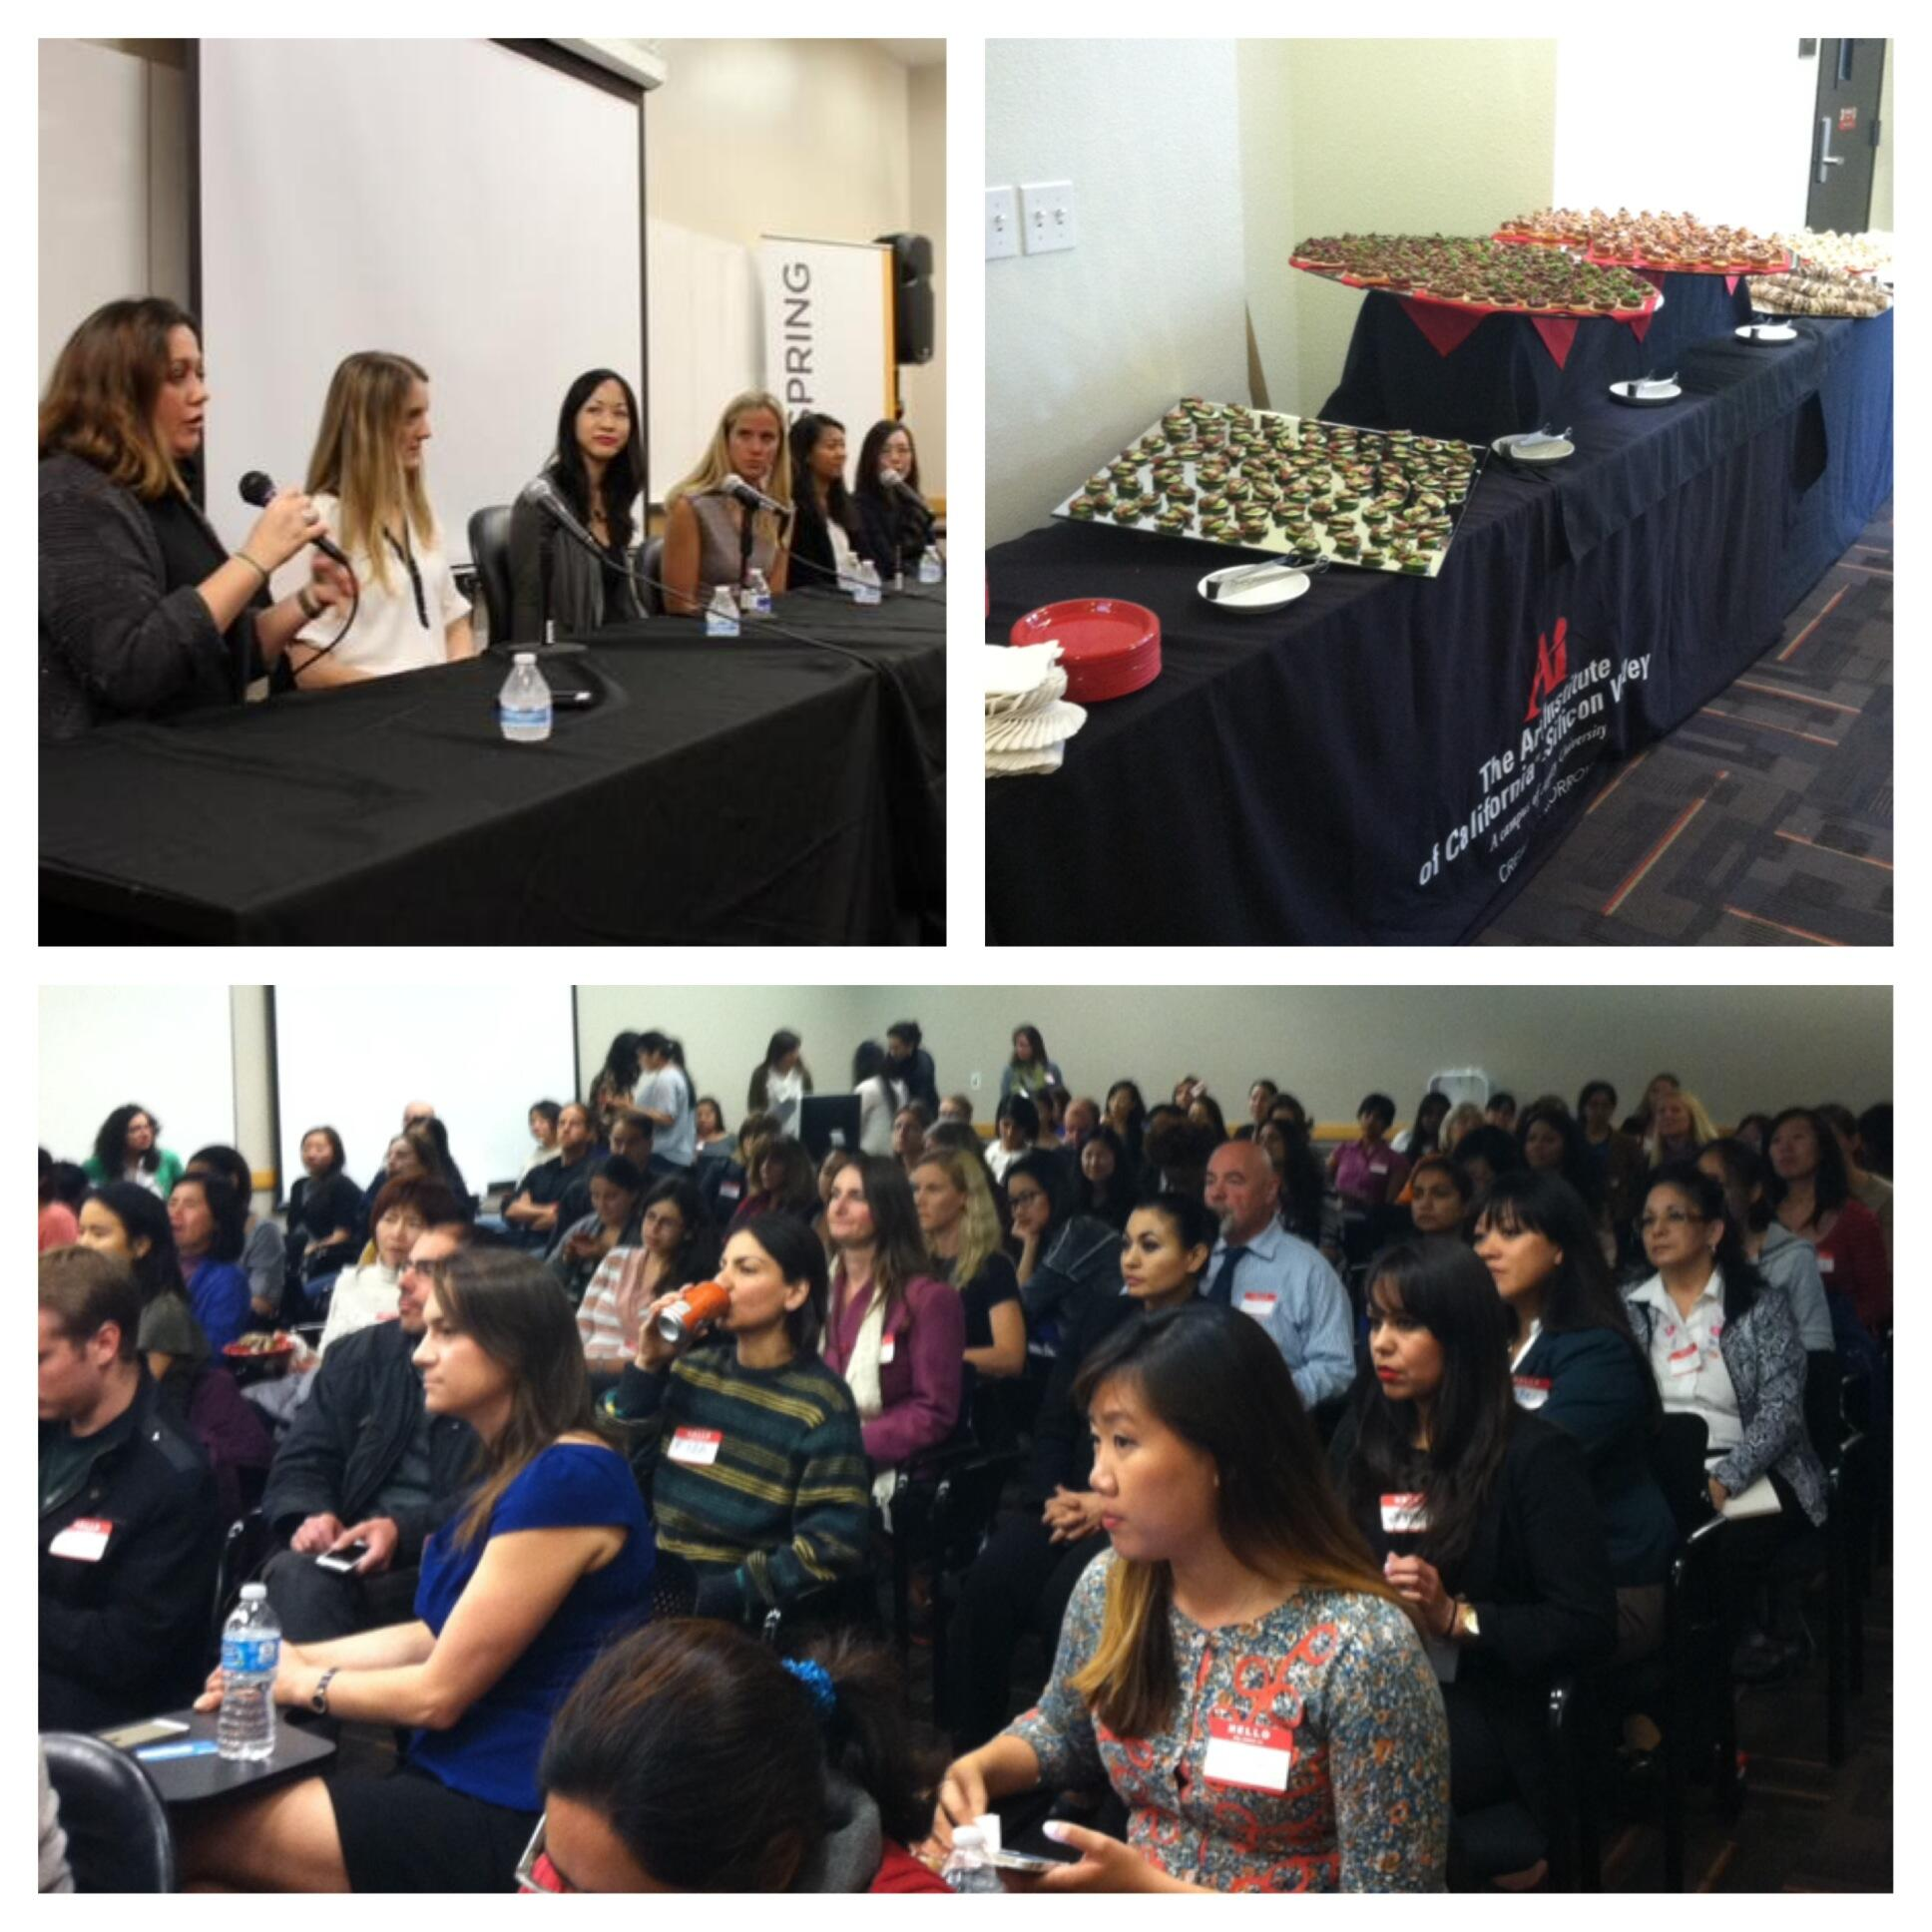 #WomenInTech had an amazing turnout in #SiliconValley with over 200 attendees! Here are more pics from the night! http://t.co/iCBSYno1lm